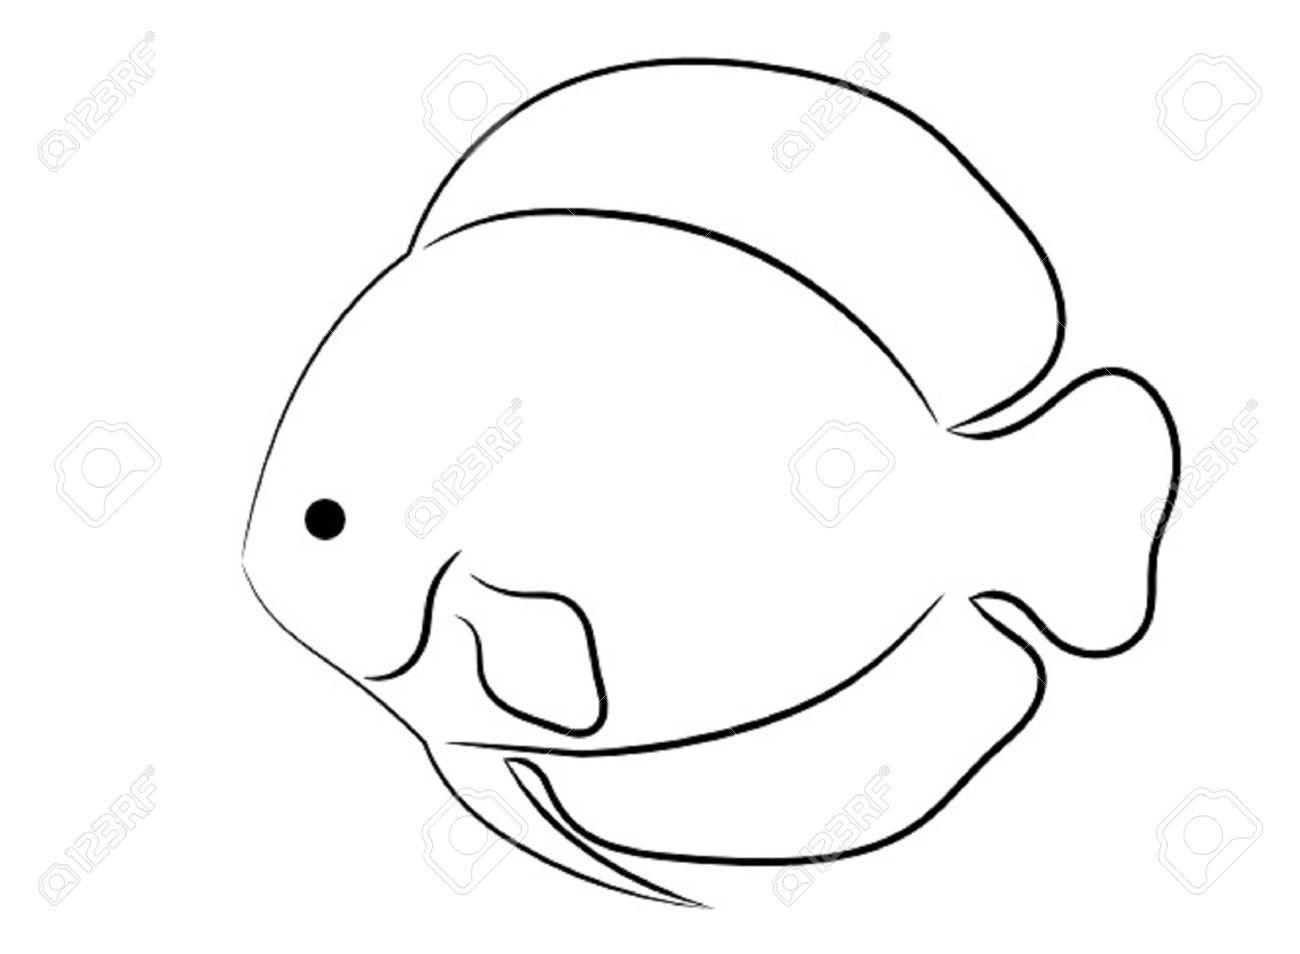 rounded tropical fish simple outline isolated on white background stock vector 23104321 - Simple Outline Pictures